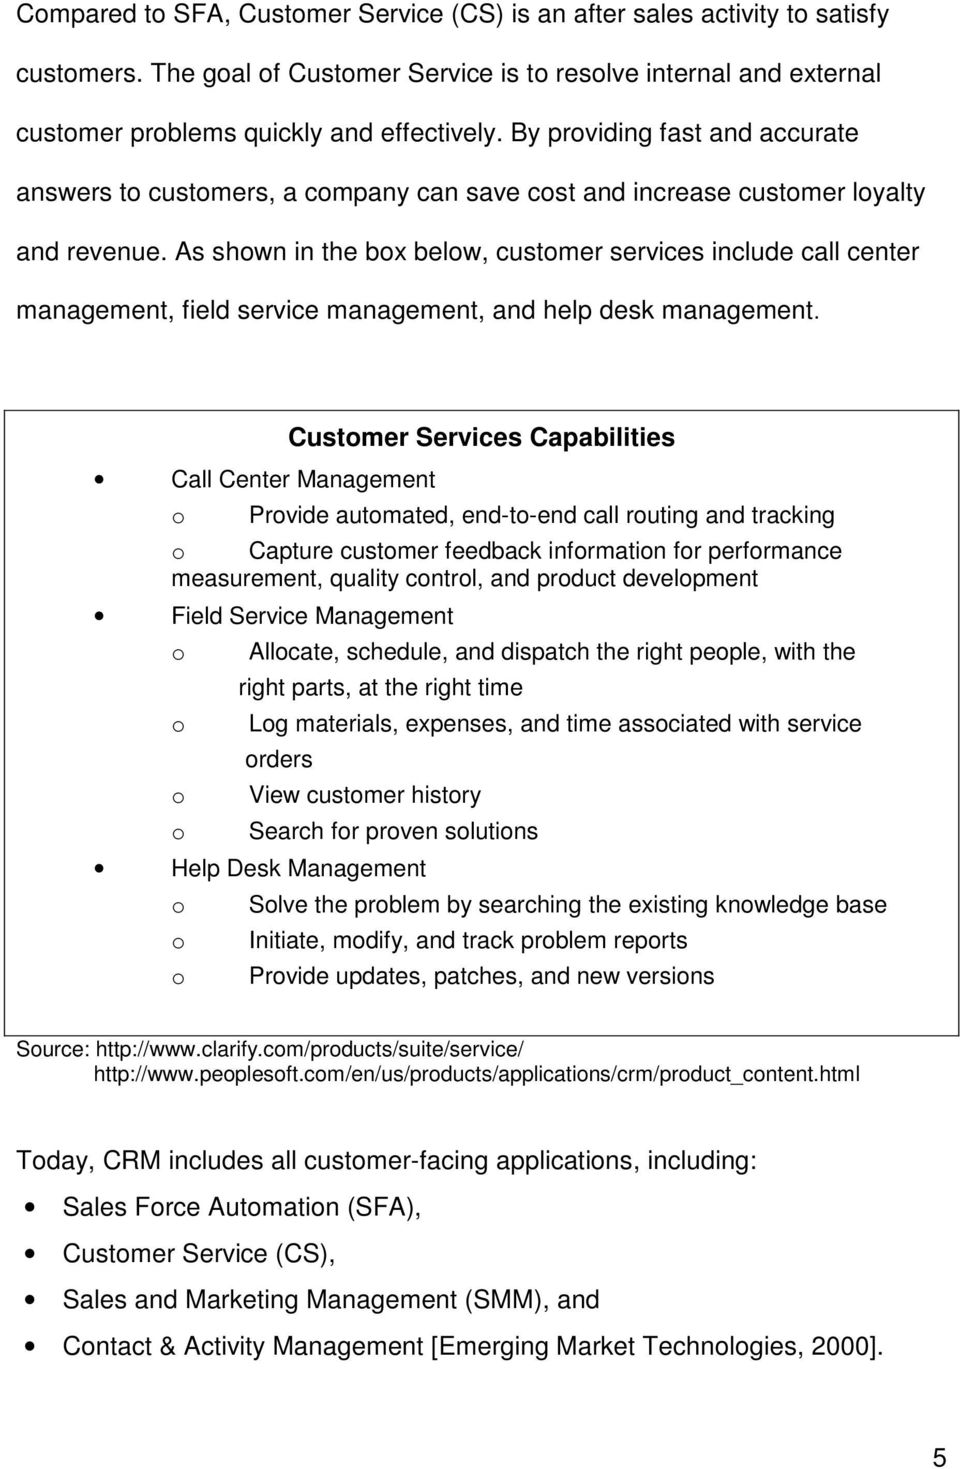 As shown in the box below, customer services include call center management, field service management, and help desk management.